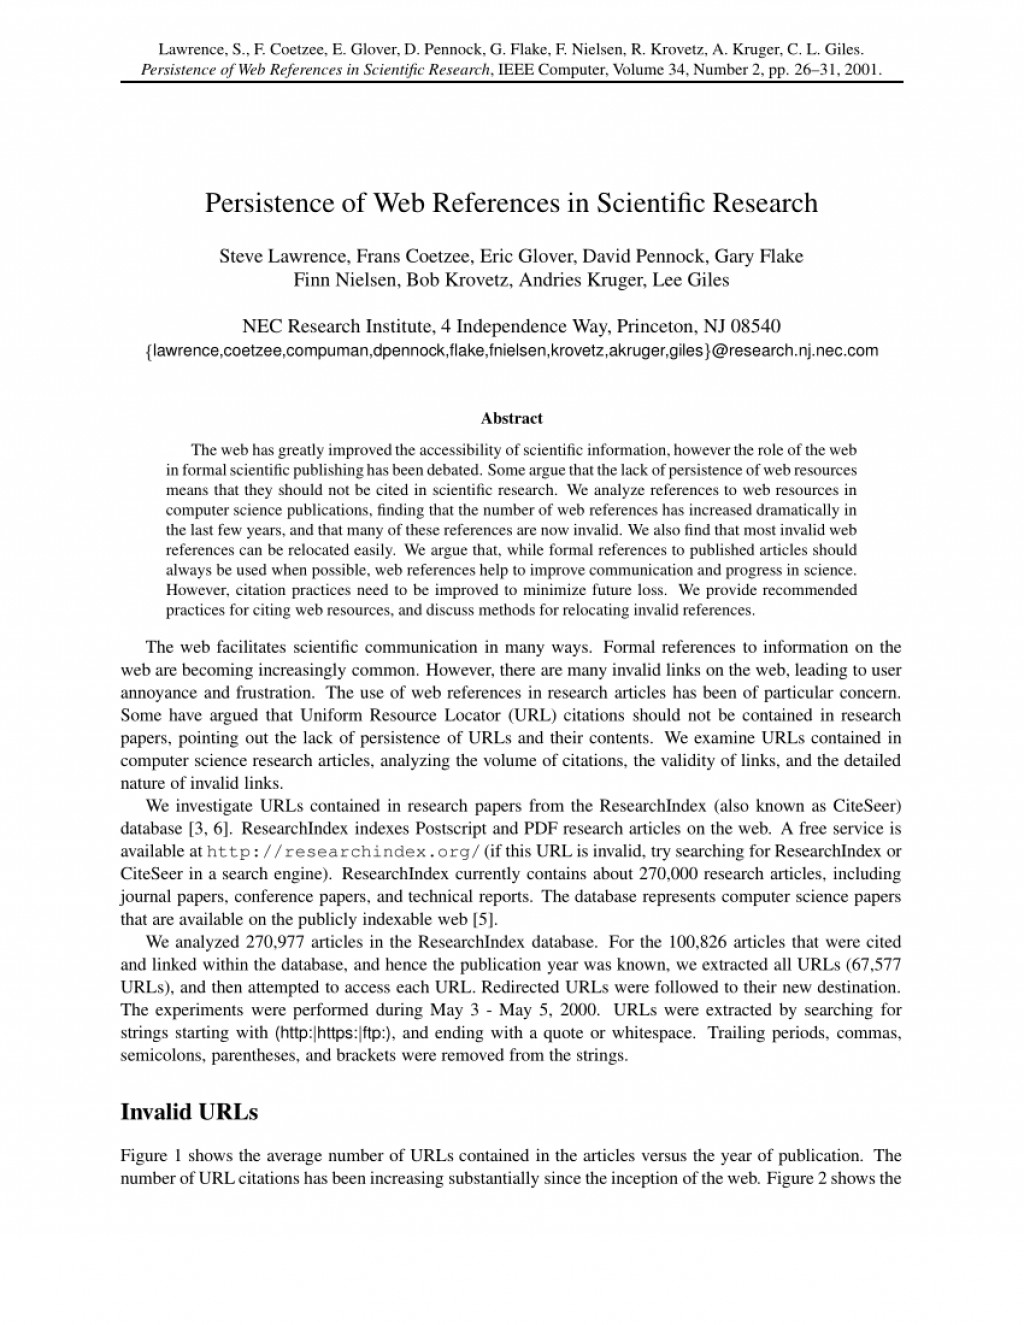 003 Research Paper Citing References In Scientific Papers Singular Large